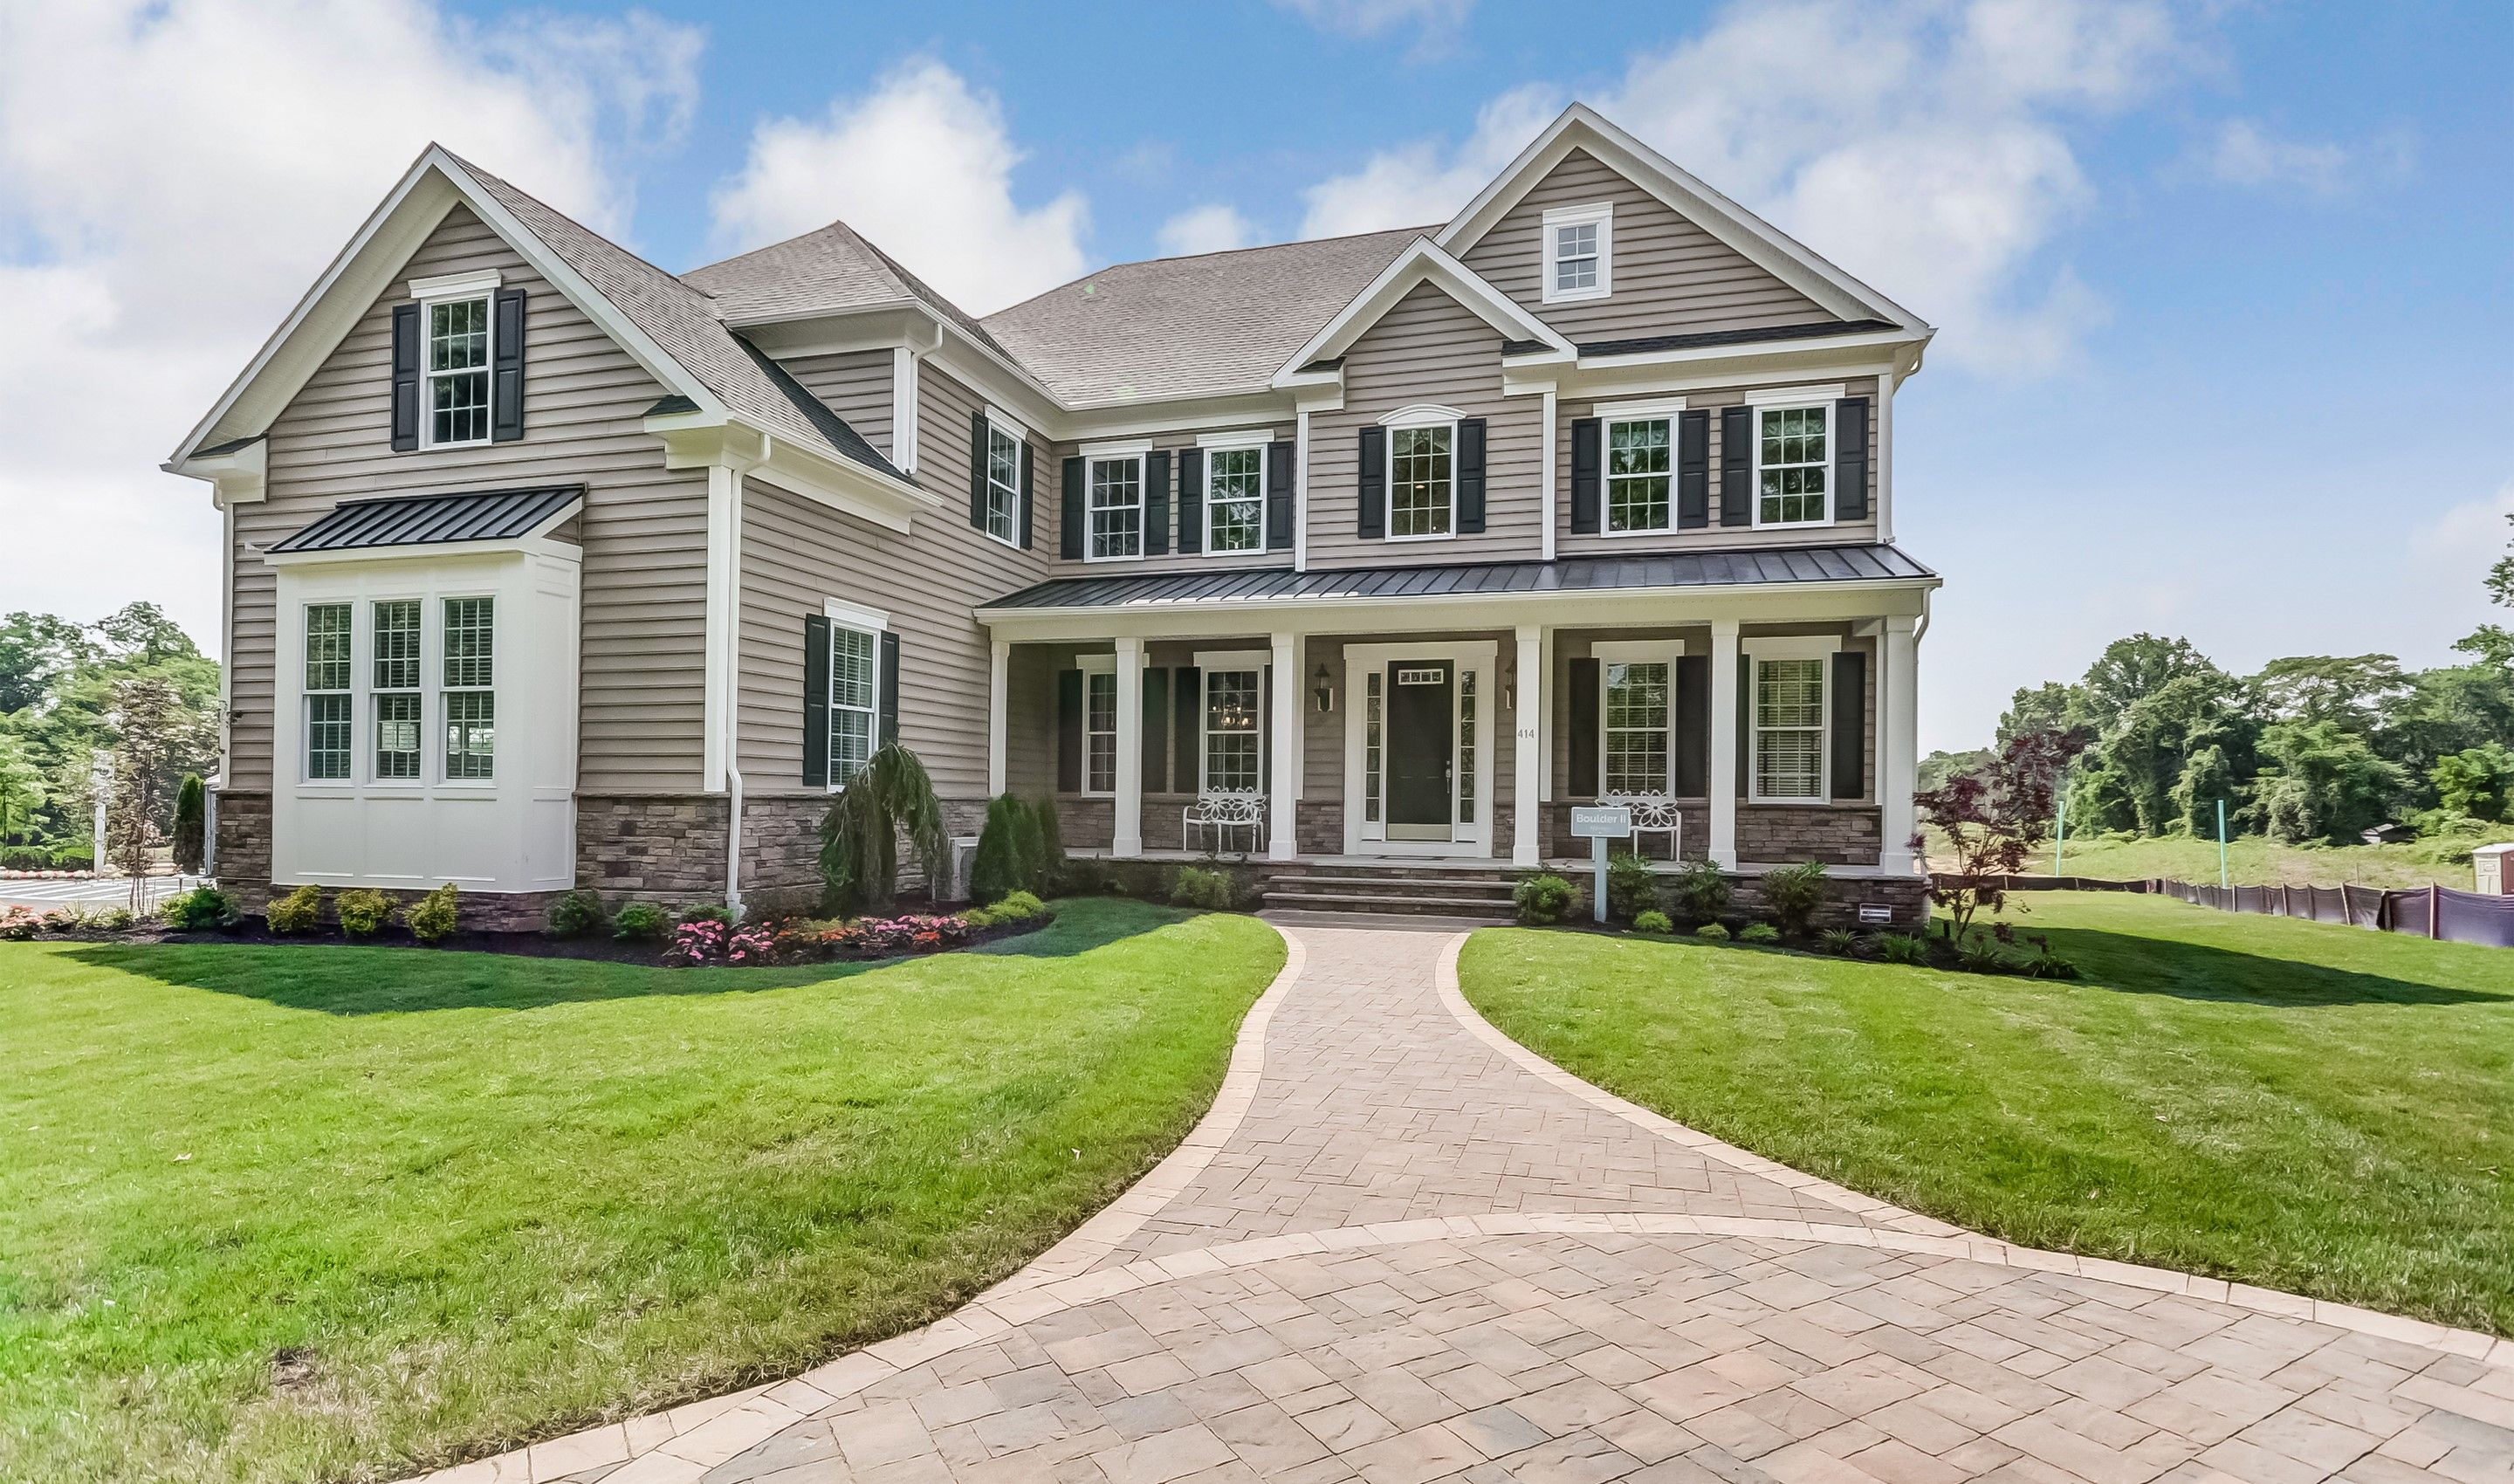 Single Family for Sale at Boulder Ii 414 Kings Highway East, Homesite 19 Middletown, New Jersey 07748 United States